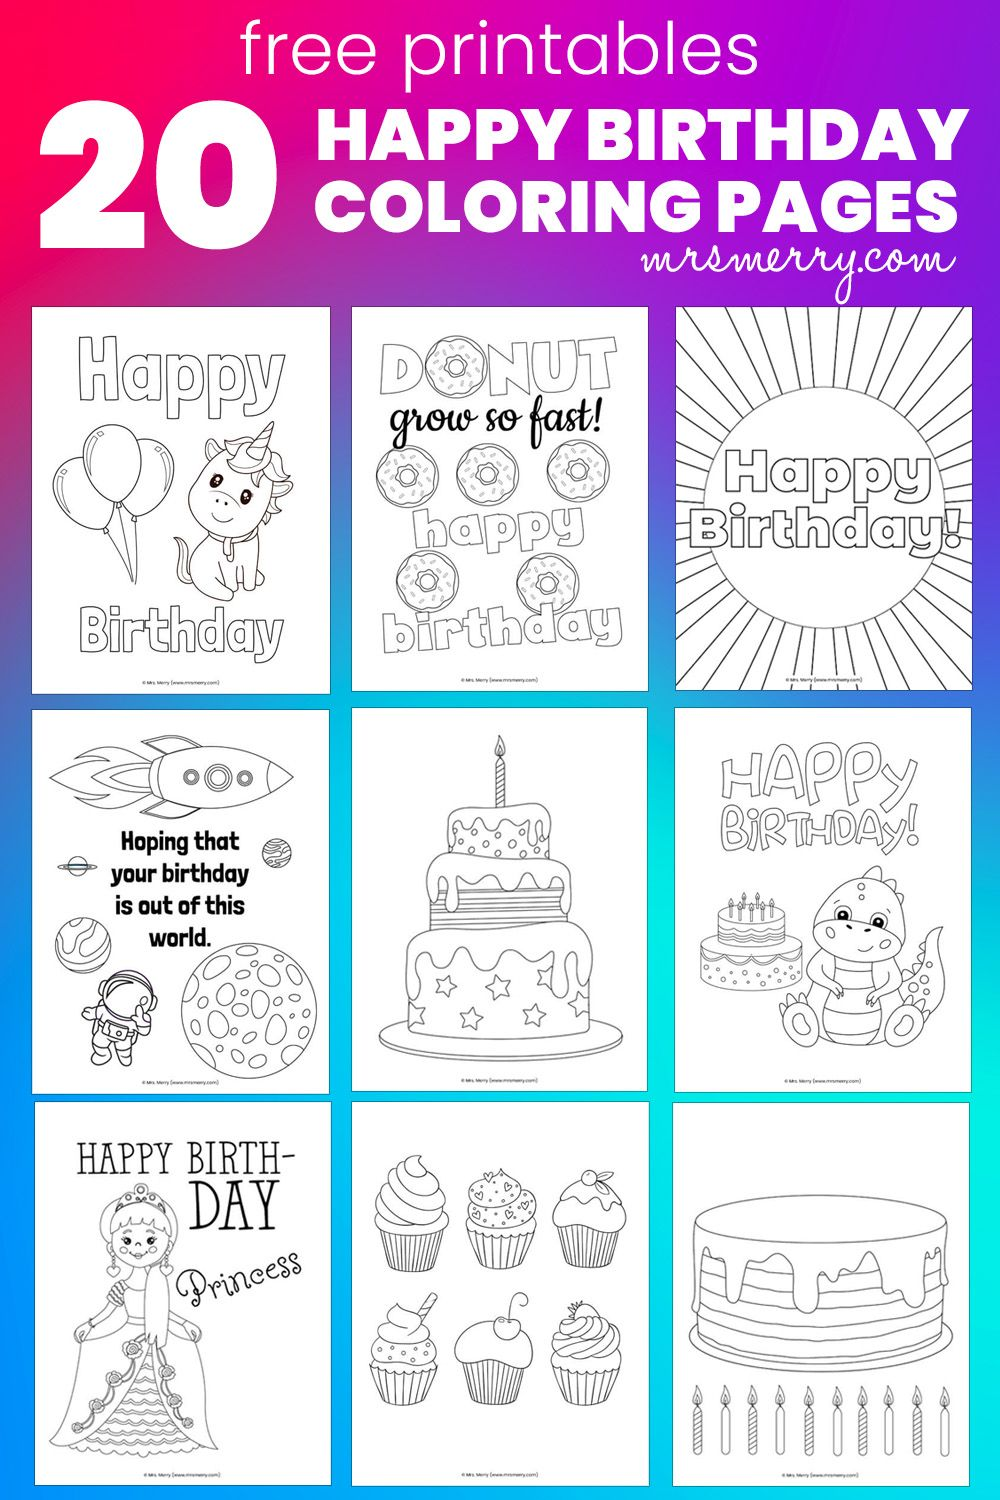 20 Happy Birthday Coloring Pages Free Birthday Coloring Sheets Mrs Merry In 2021 Birthday Coloring Pages Coloring Pages For Kids Happy Birthday Coloring Pages [ 1500 x 1000 Pixel ]